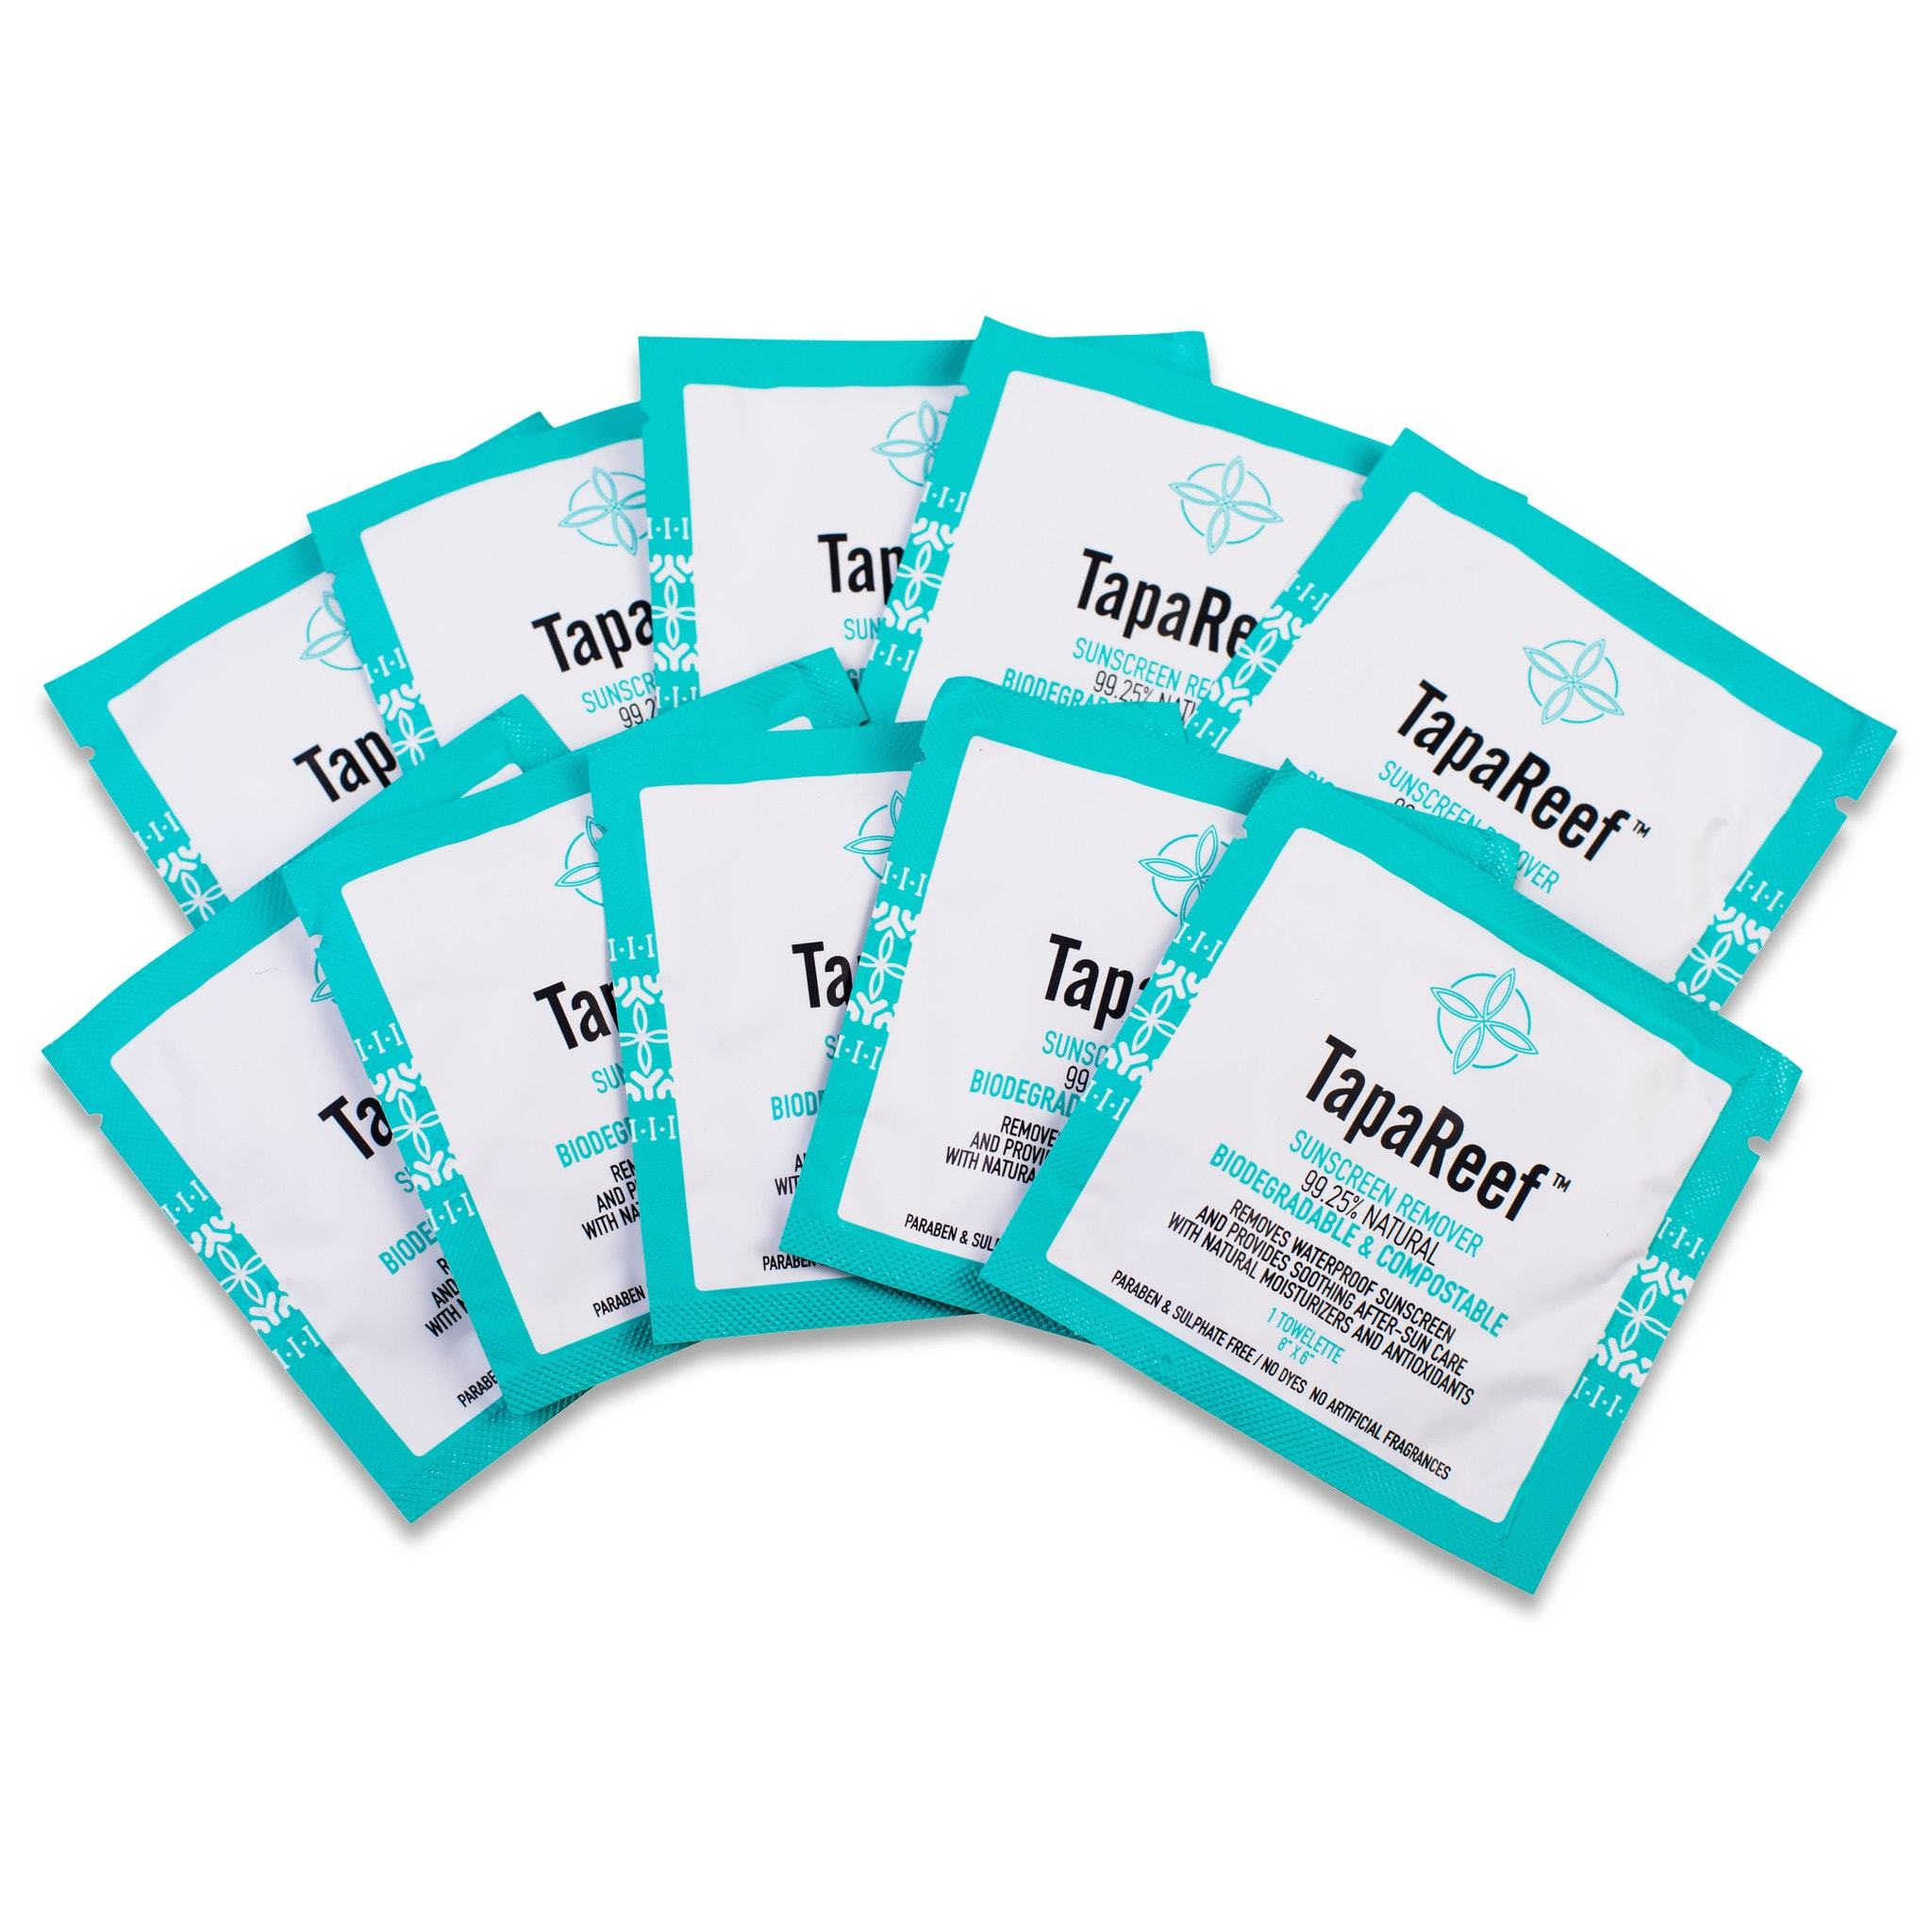 TapaReef Sunscreen Remover Facial wipes in singles